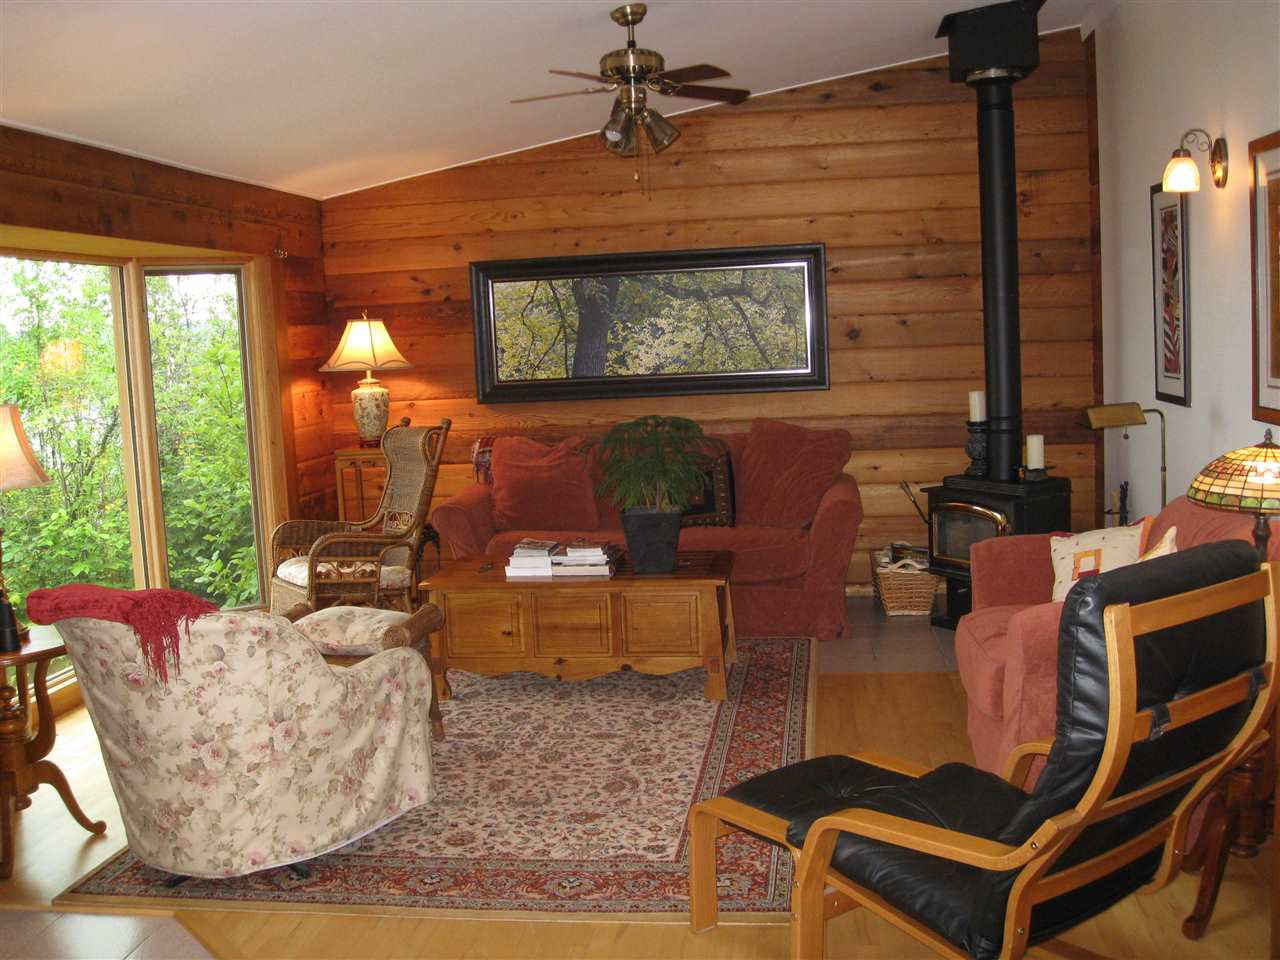 Photo 7: Photos: 5, 1319 Twp Rd 550: Rural Lac Ste. Anne County House for sale : MLS®# E4167720